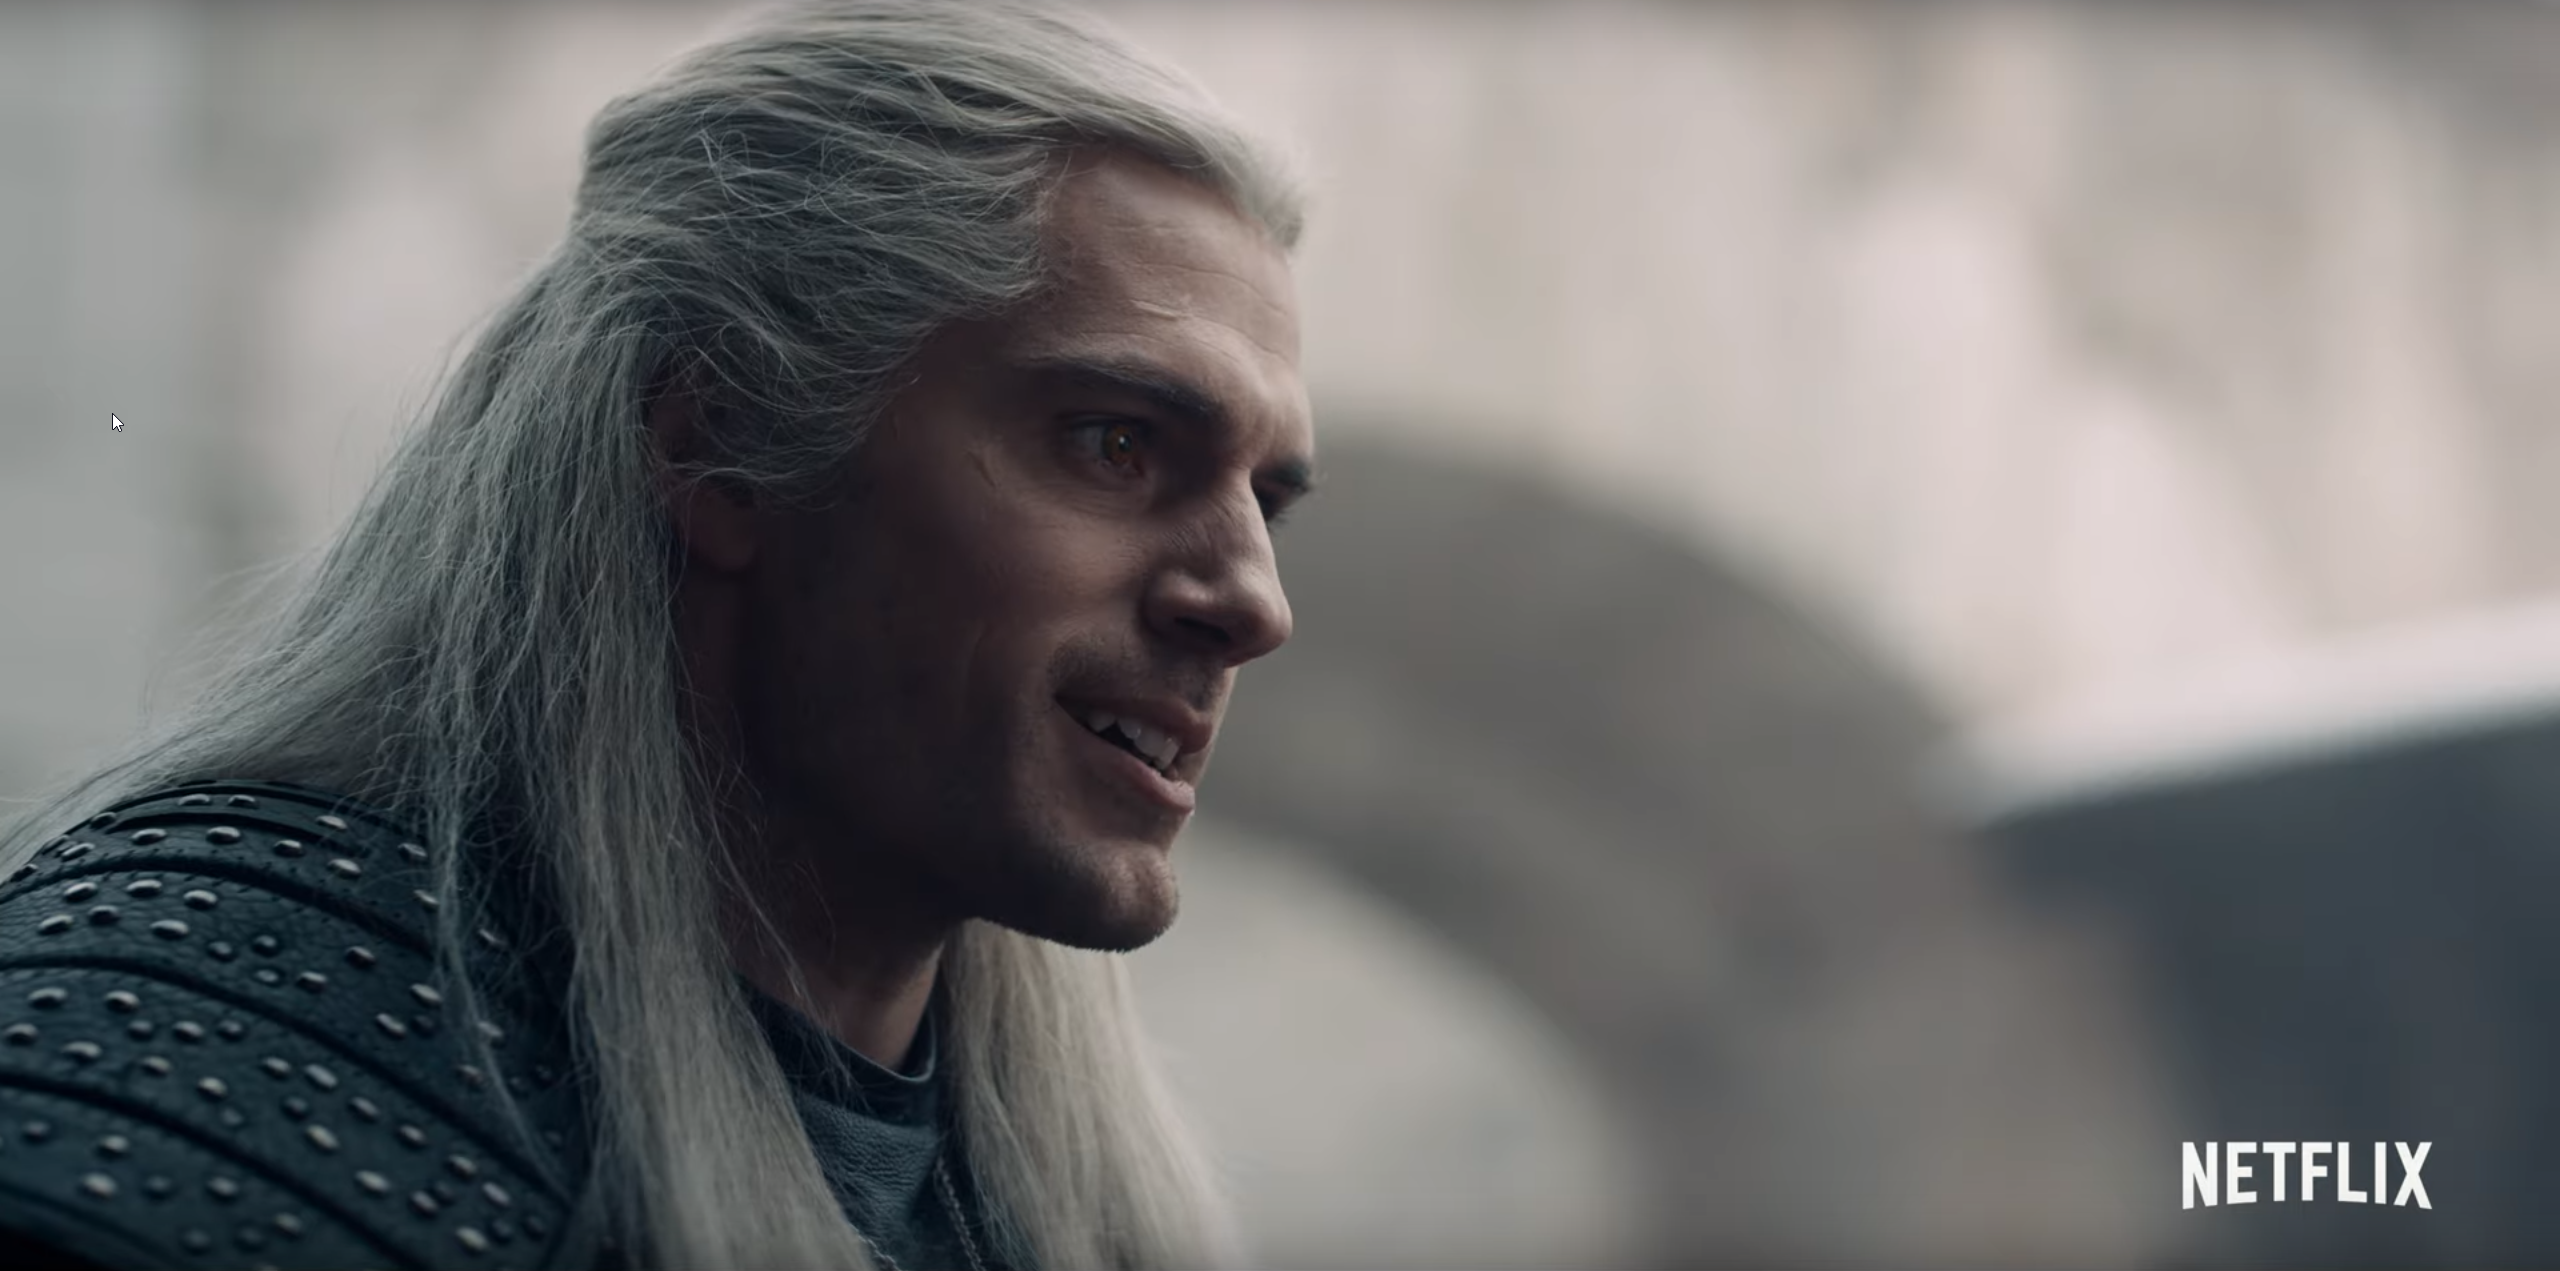 Netflix announces The Witcher's release date, reveals first trailer